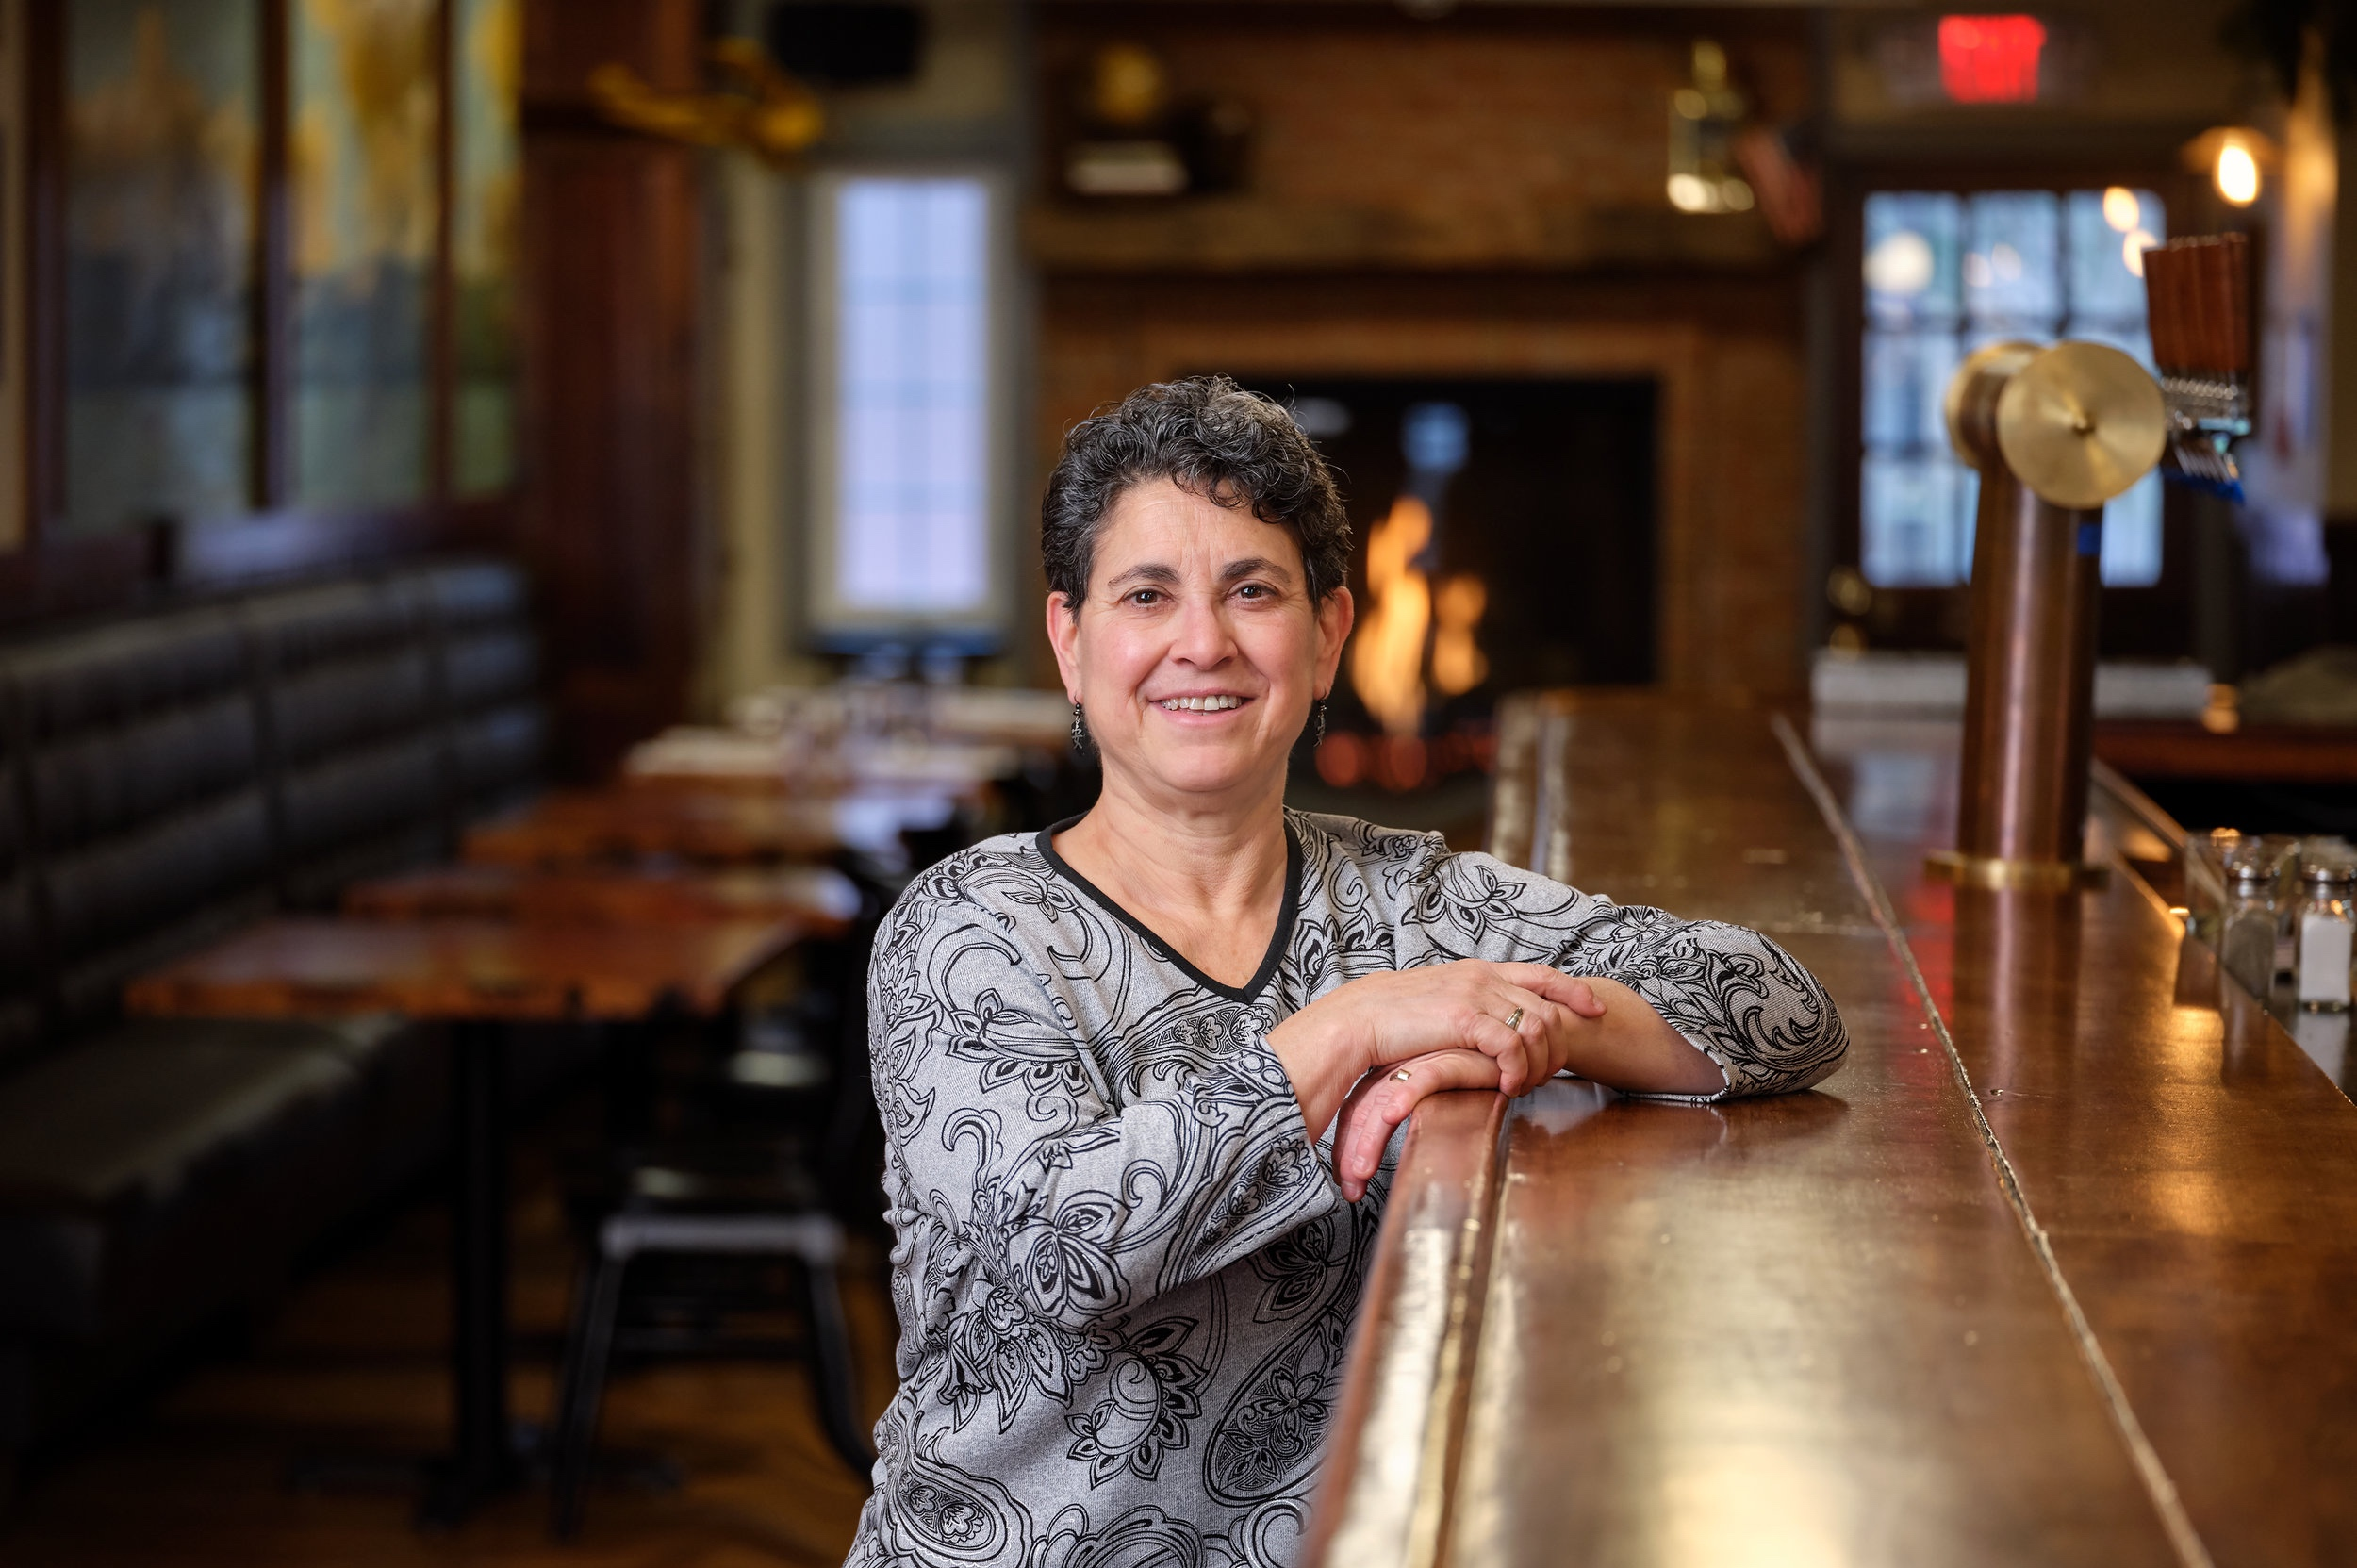 meet our inn keeper, marie derosa. - Marie is a Rochester native who has been residing in the Finger Lakes for 30 years. She is passionate about everything our area has to offer. Marie is more than happy to assist you before, during, and after your stay with us!